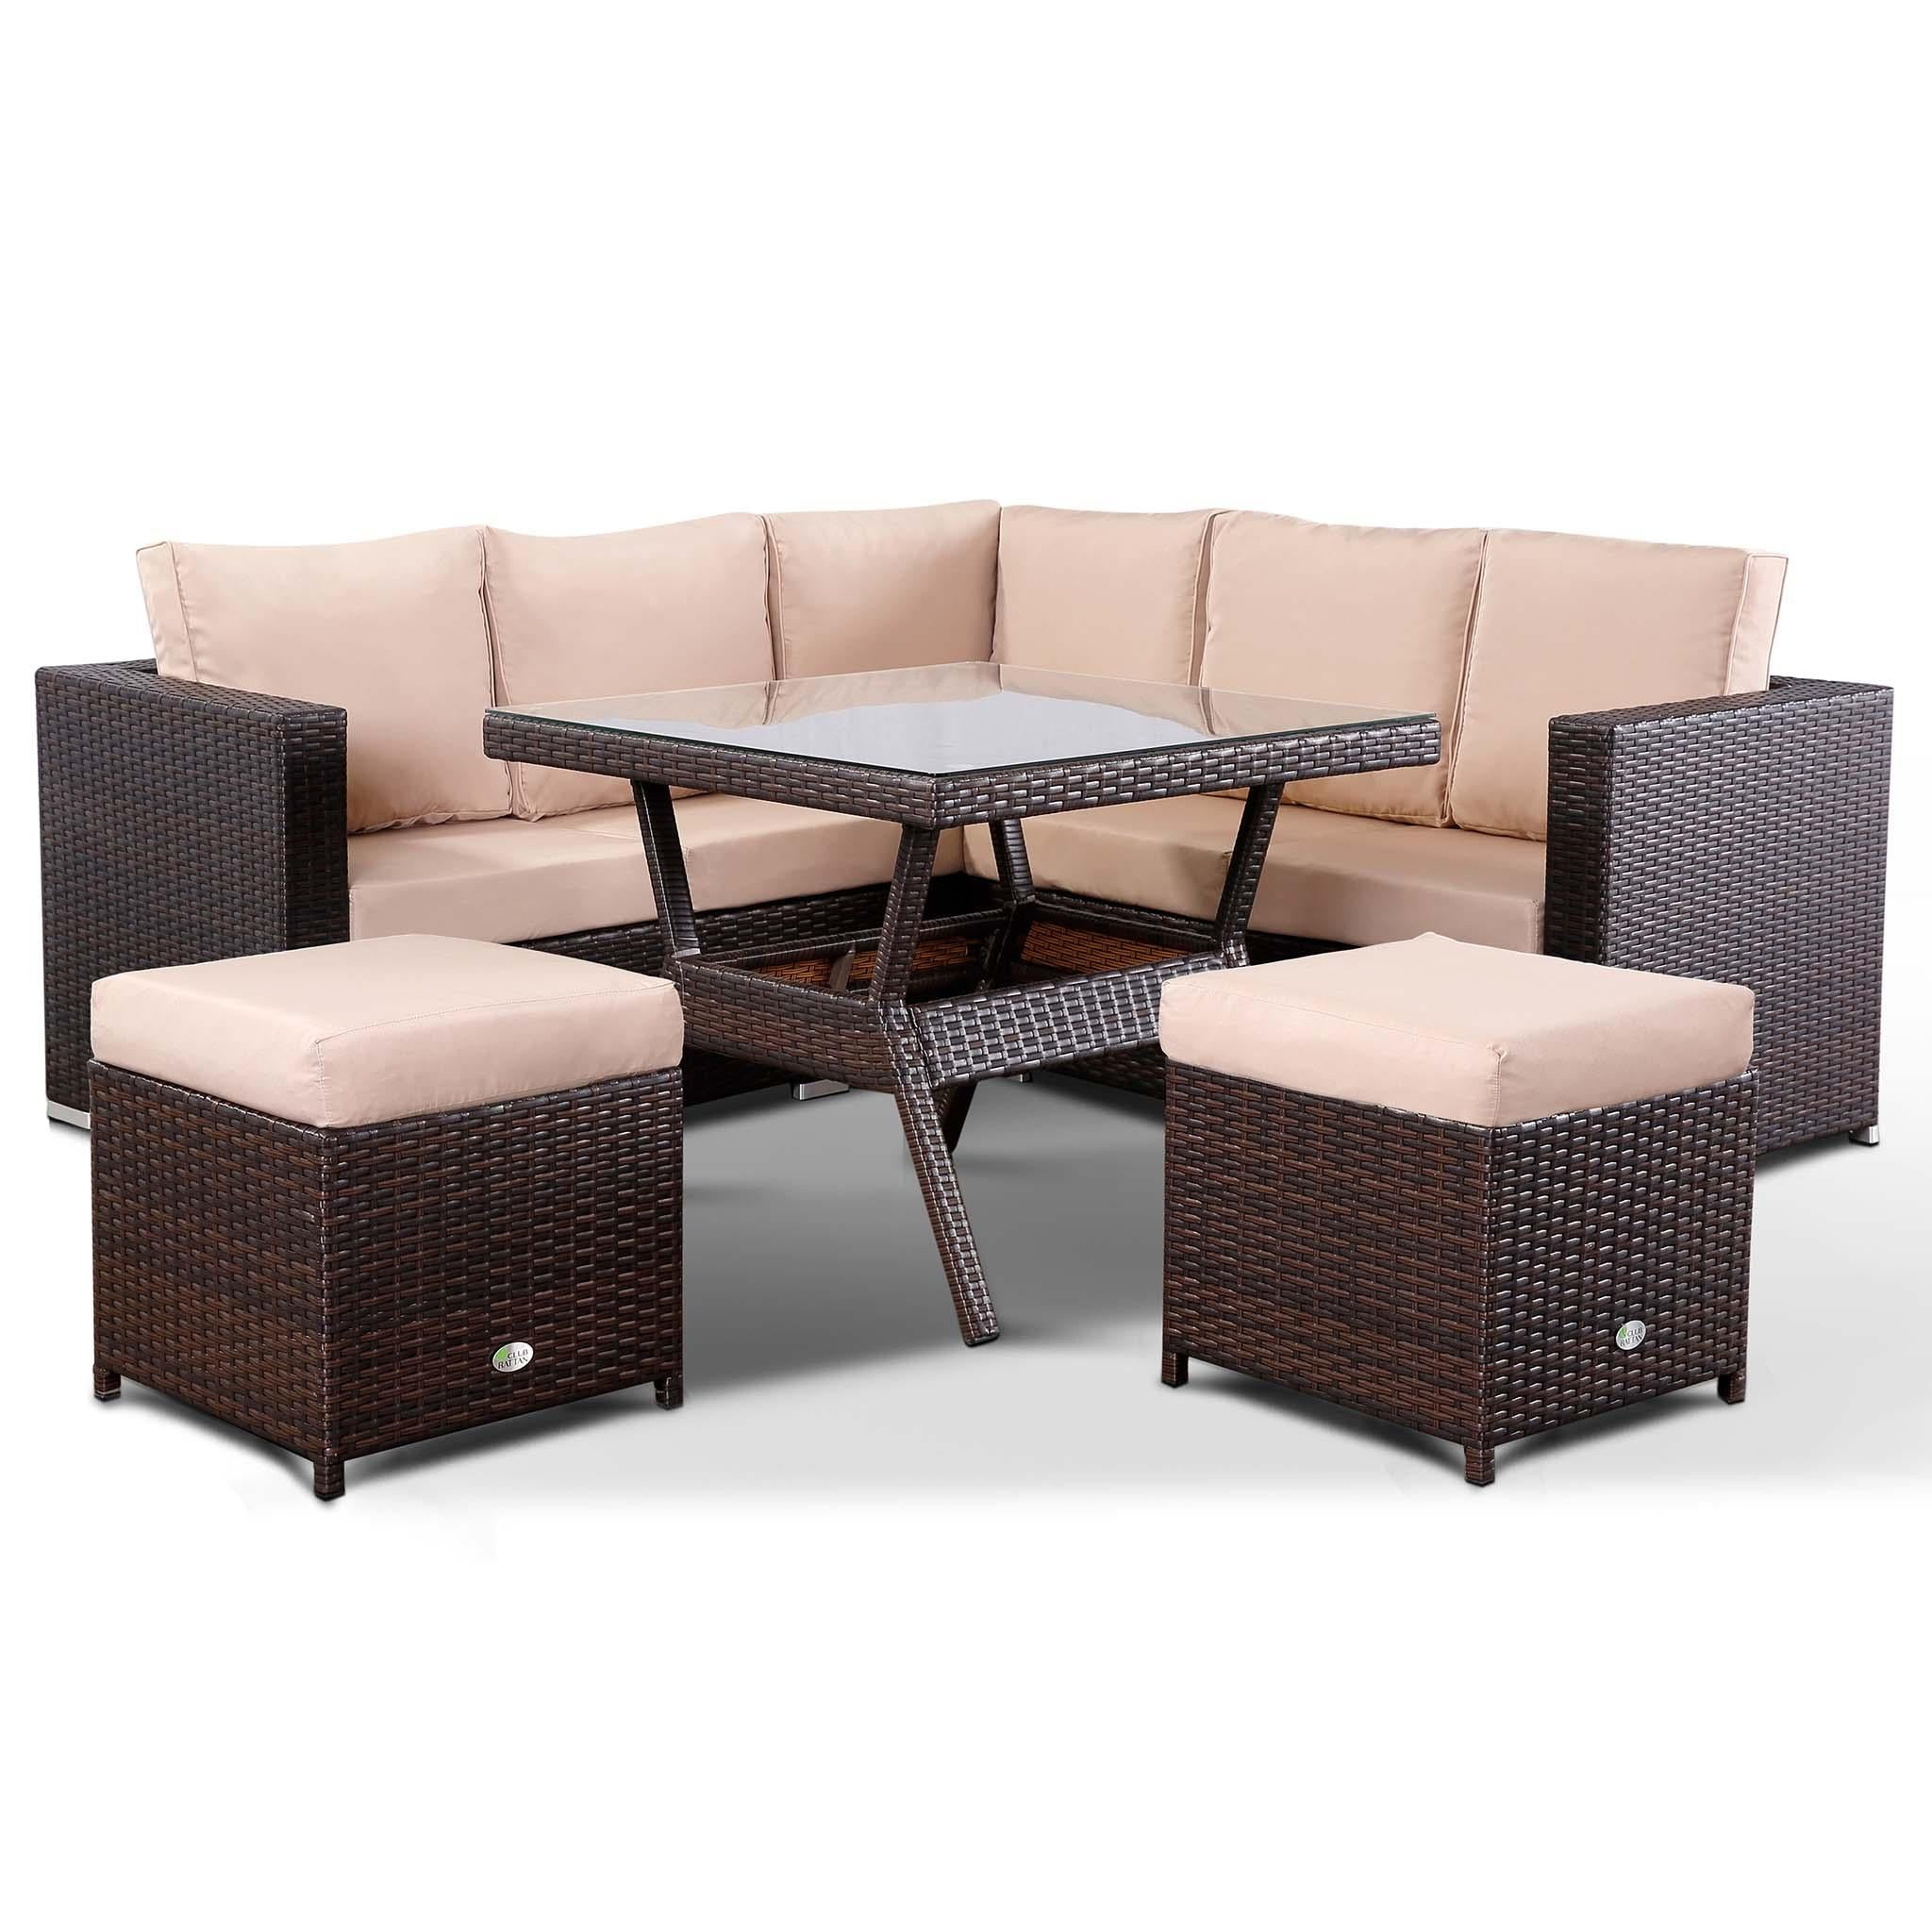 Incredible Lille Corner Sofa With Dining Table And 2 Stools In Small Interior Design Ideas Gentotthenellocom